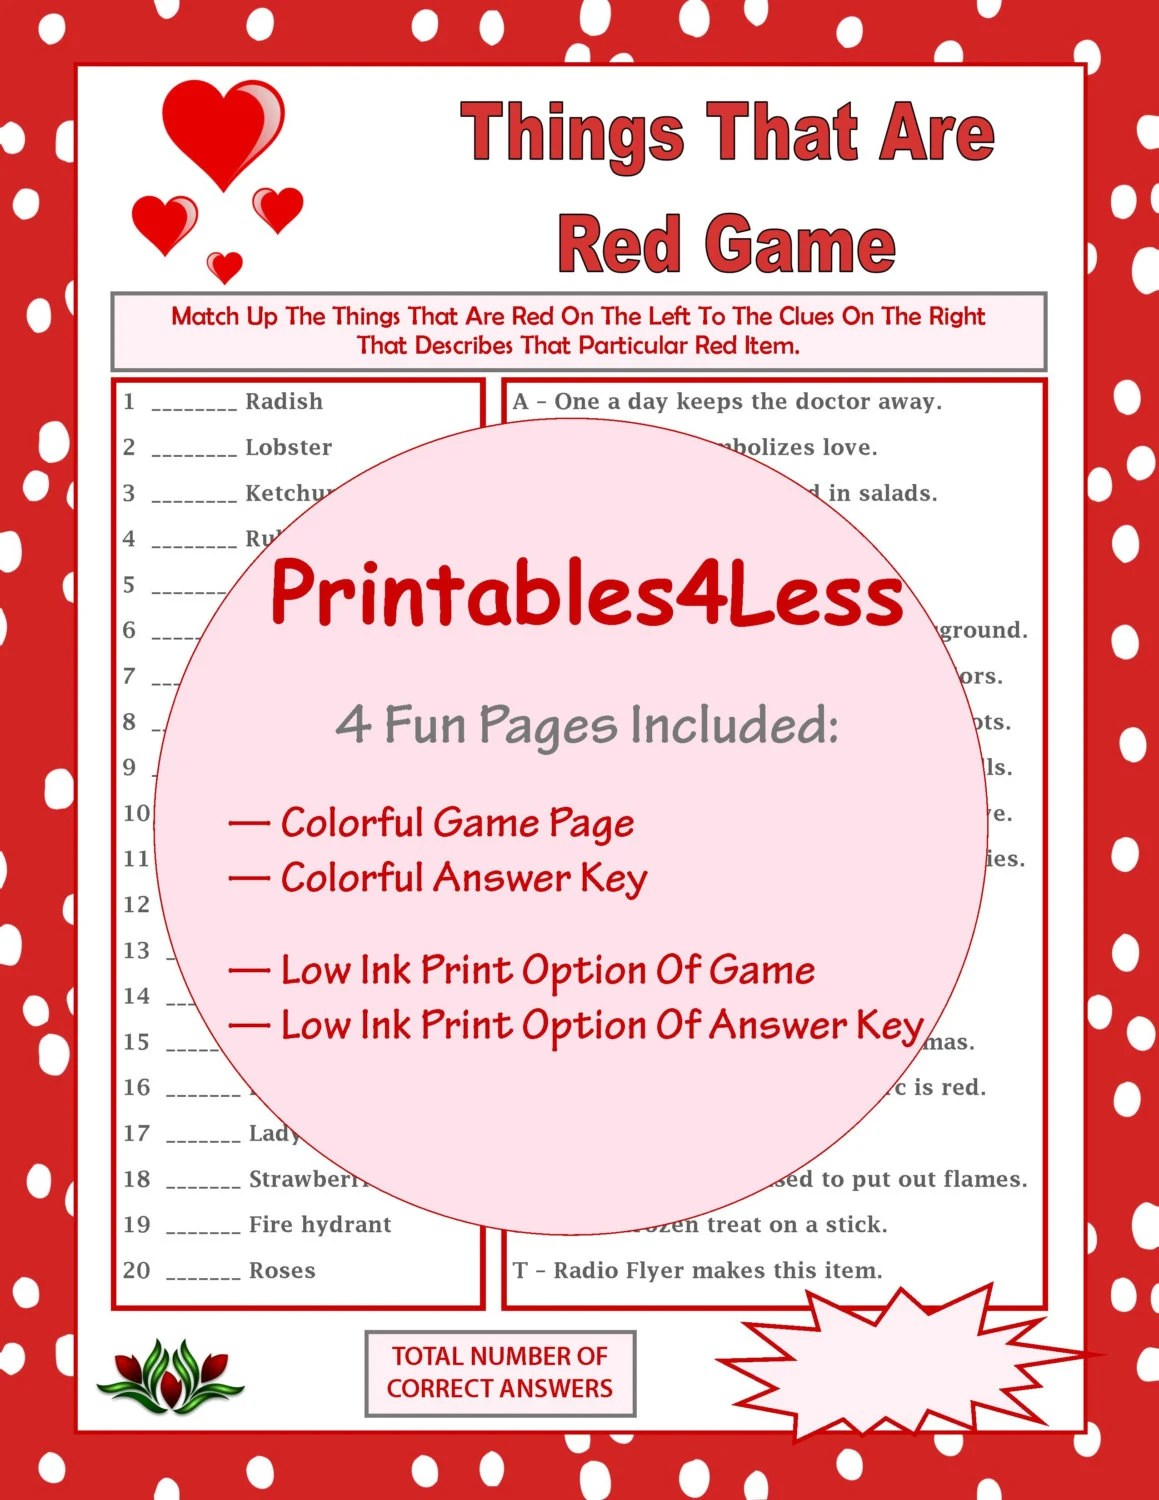 Things That Are Red Game Printable Games For Valentines